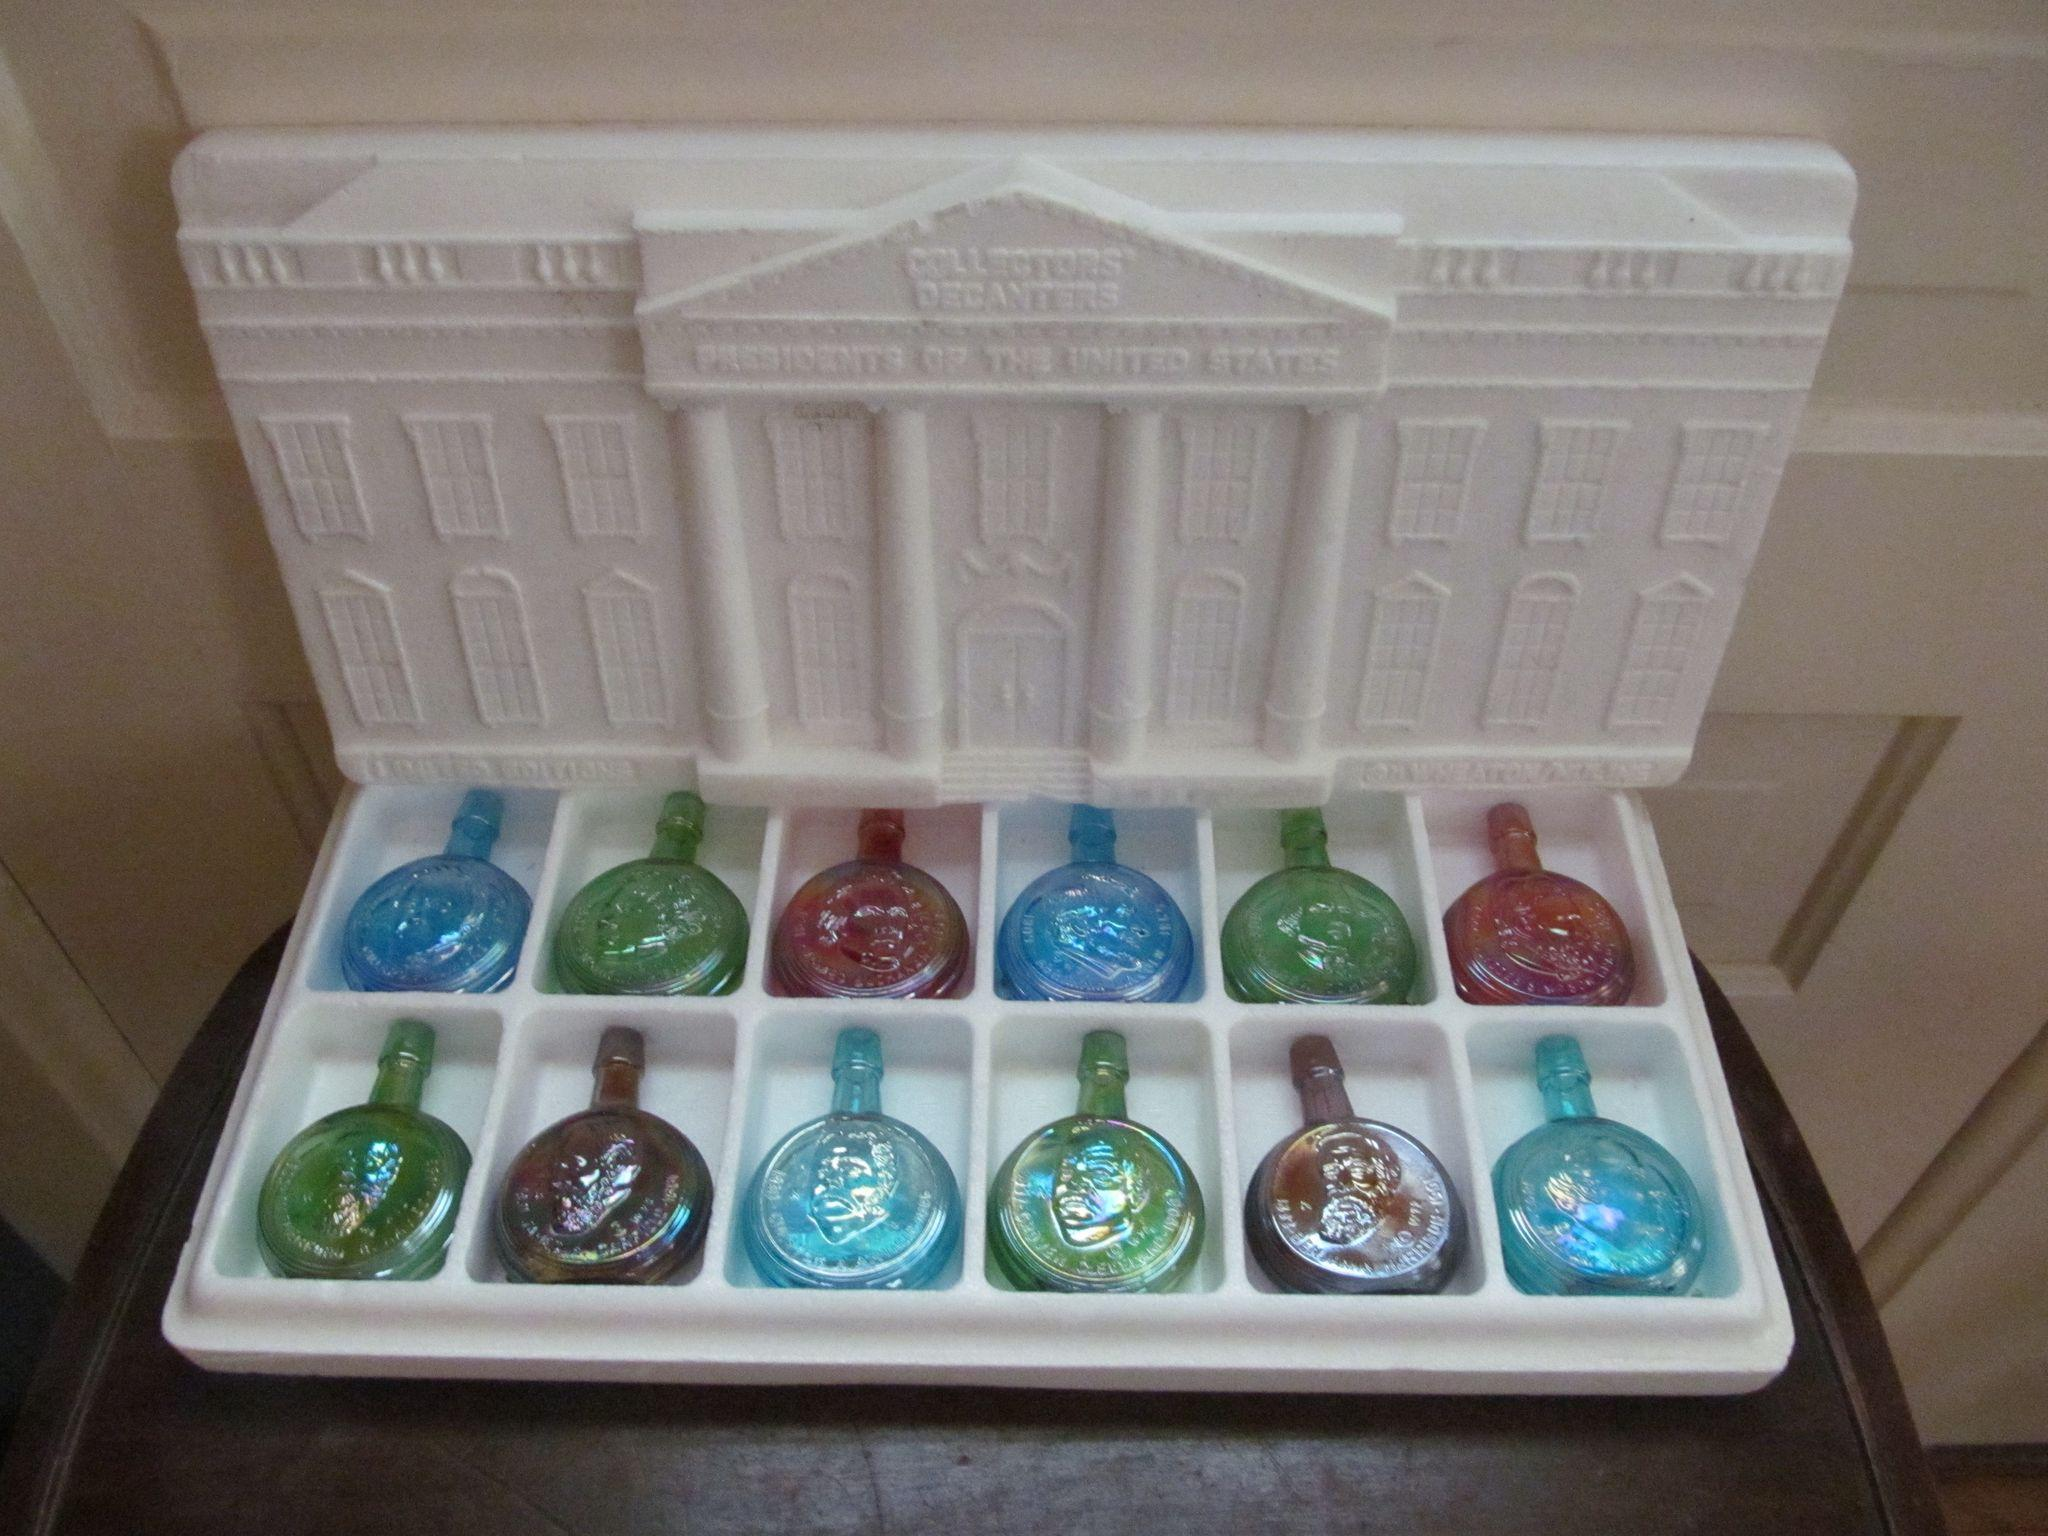 Wheaton Presidential Commemorative Limited Edition Carnival Glass Bottles, Second in Series